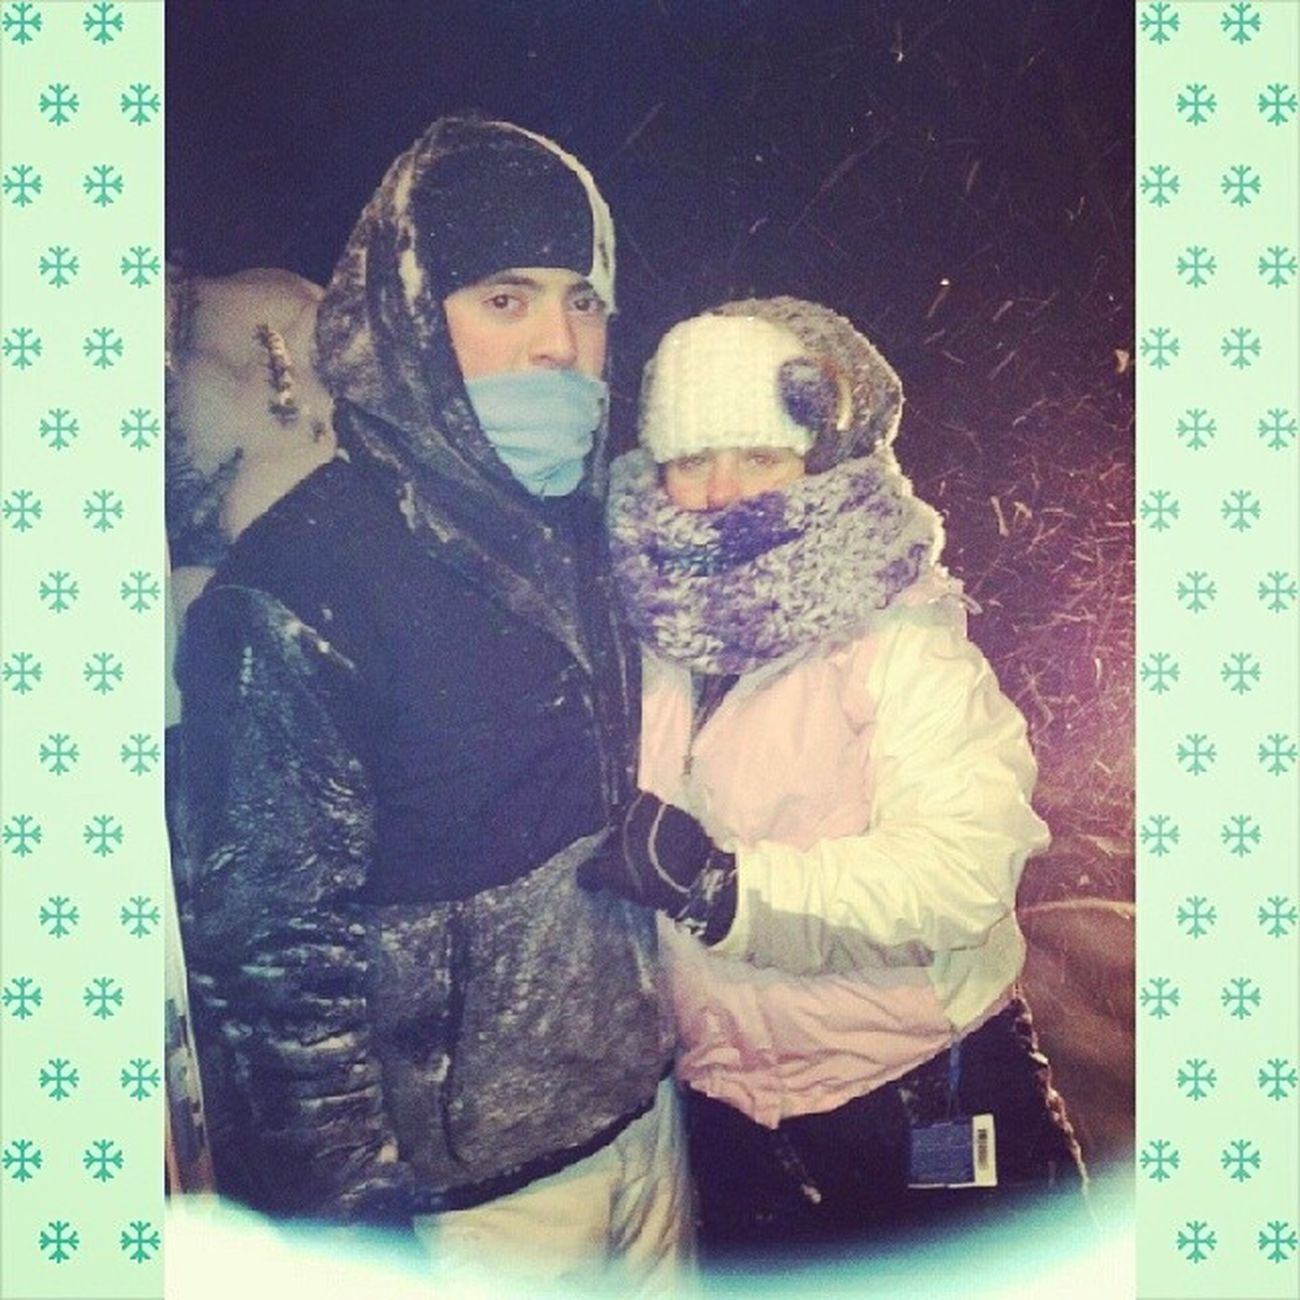 Playinginthesnow with the Boyfriend Snowday